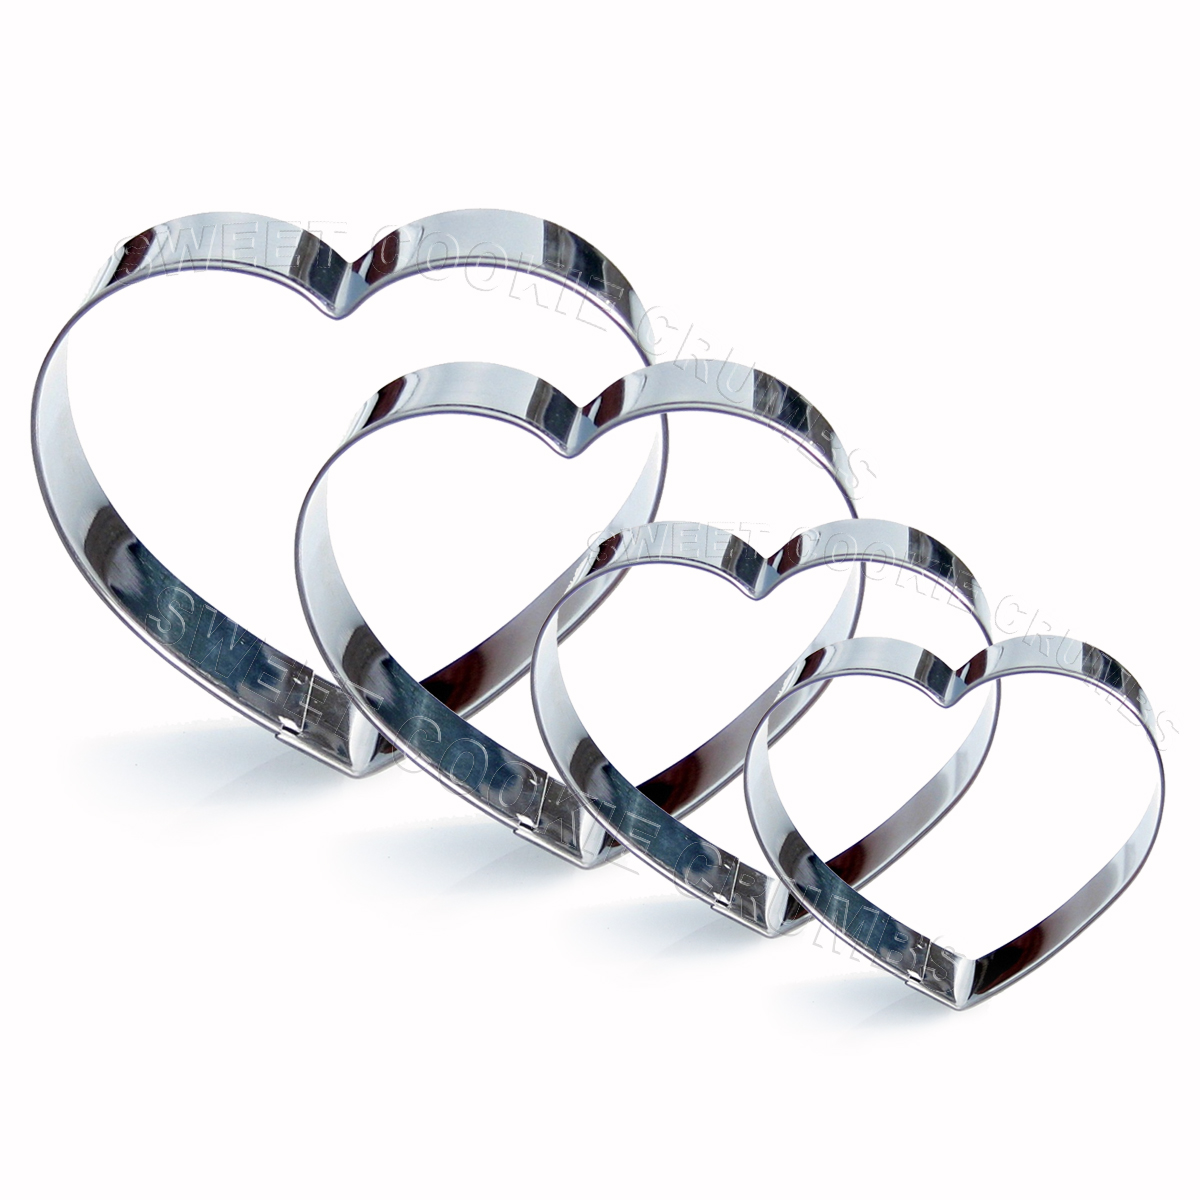 Heart Cookie Cutter Set, 4 Piece, Stainless Steel